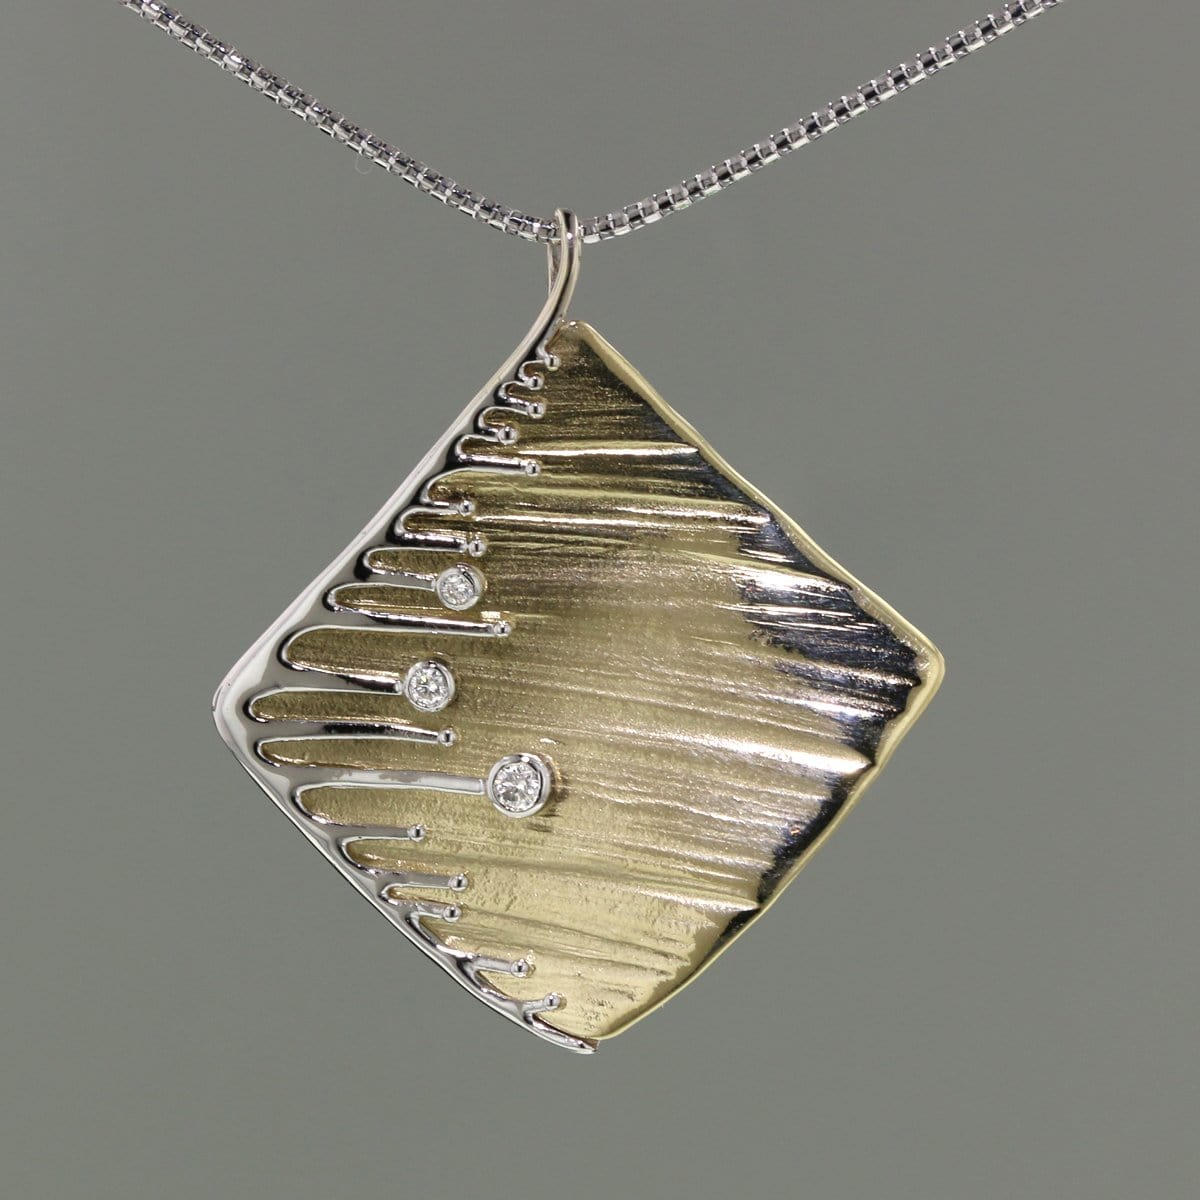 14k Gold & Diamond Pendant - 1021D-Y-Leon Israel Designs-Renee Taylor Gallery